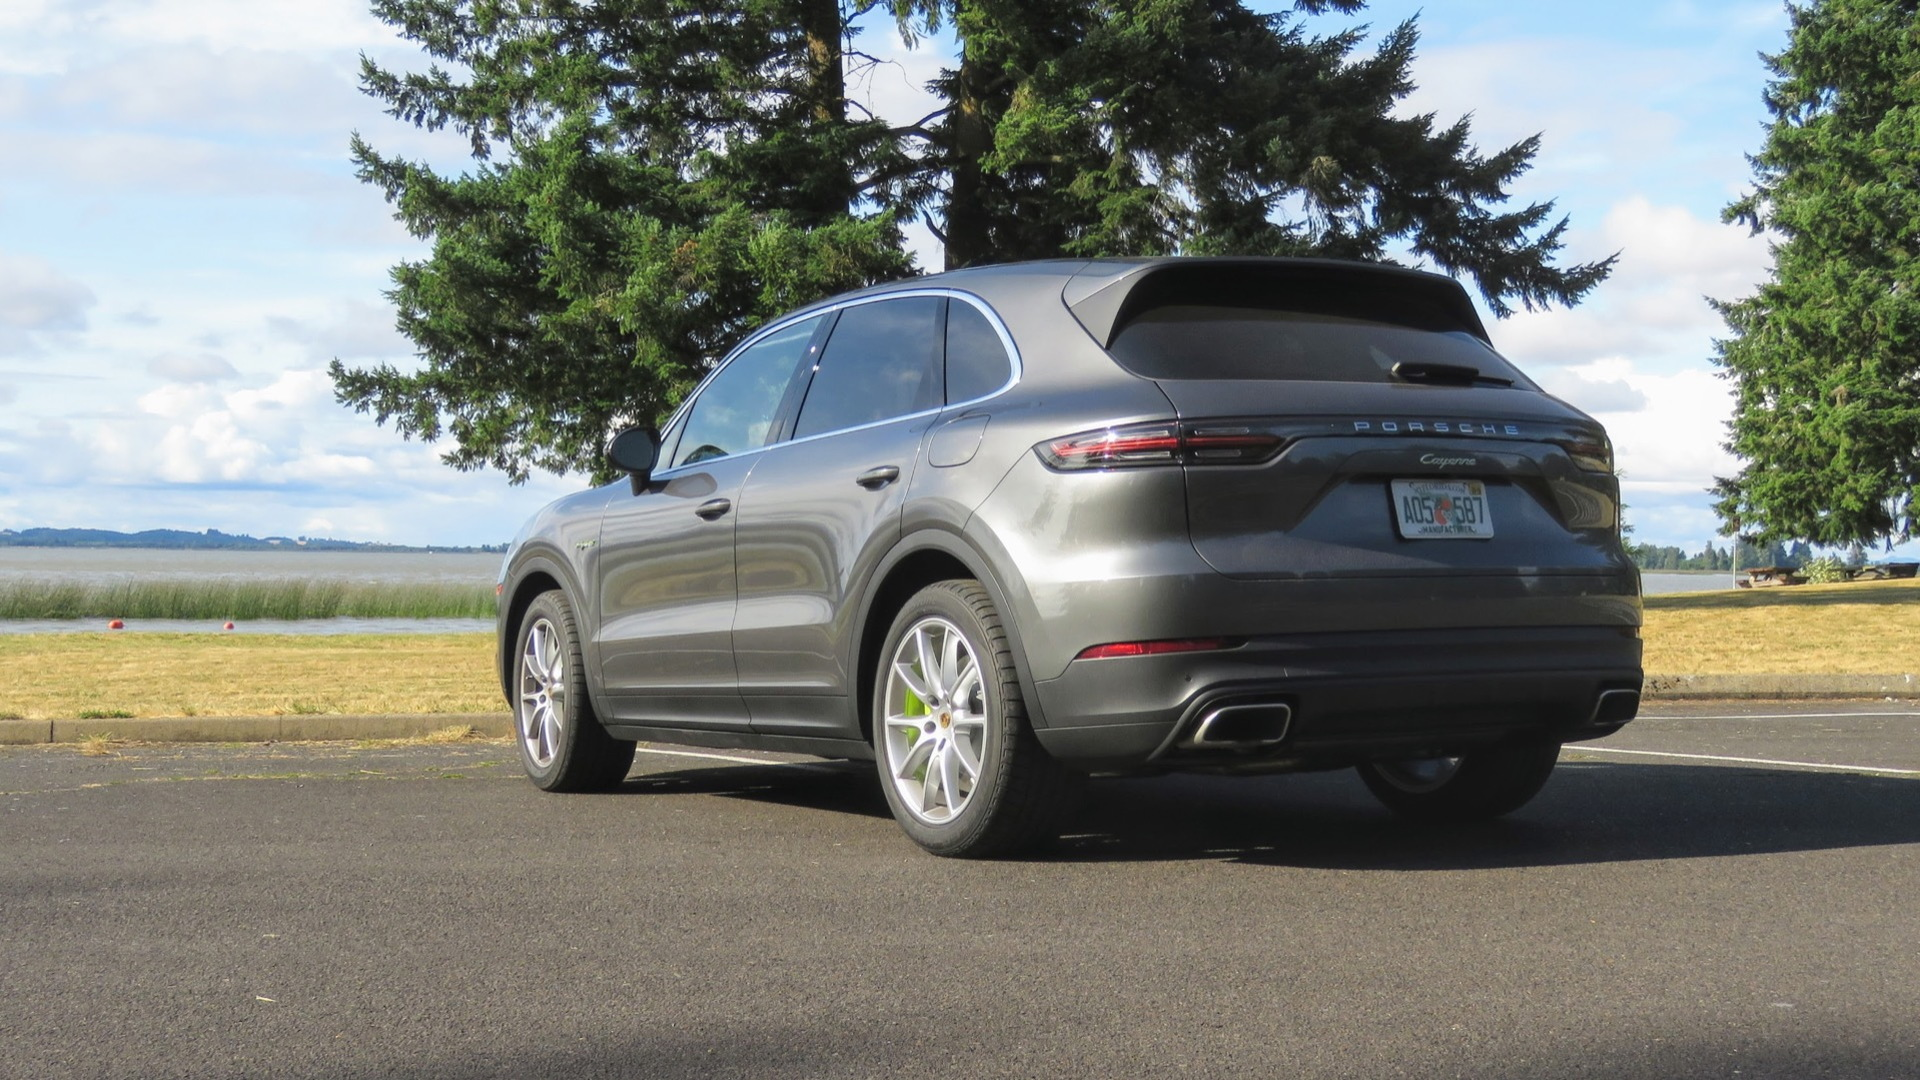 2019 Porsche Cayenne E-Hybrid first drive  -  Oregon, July 2019